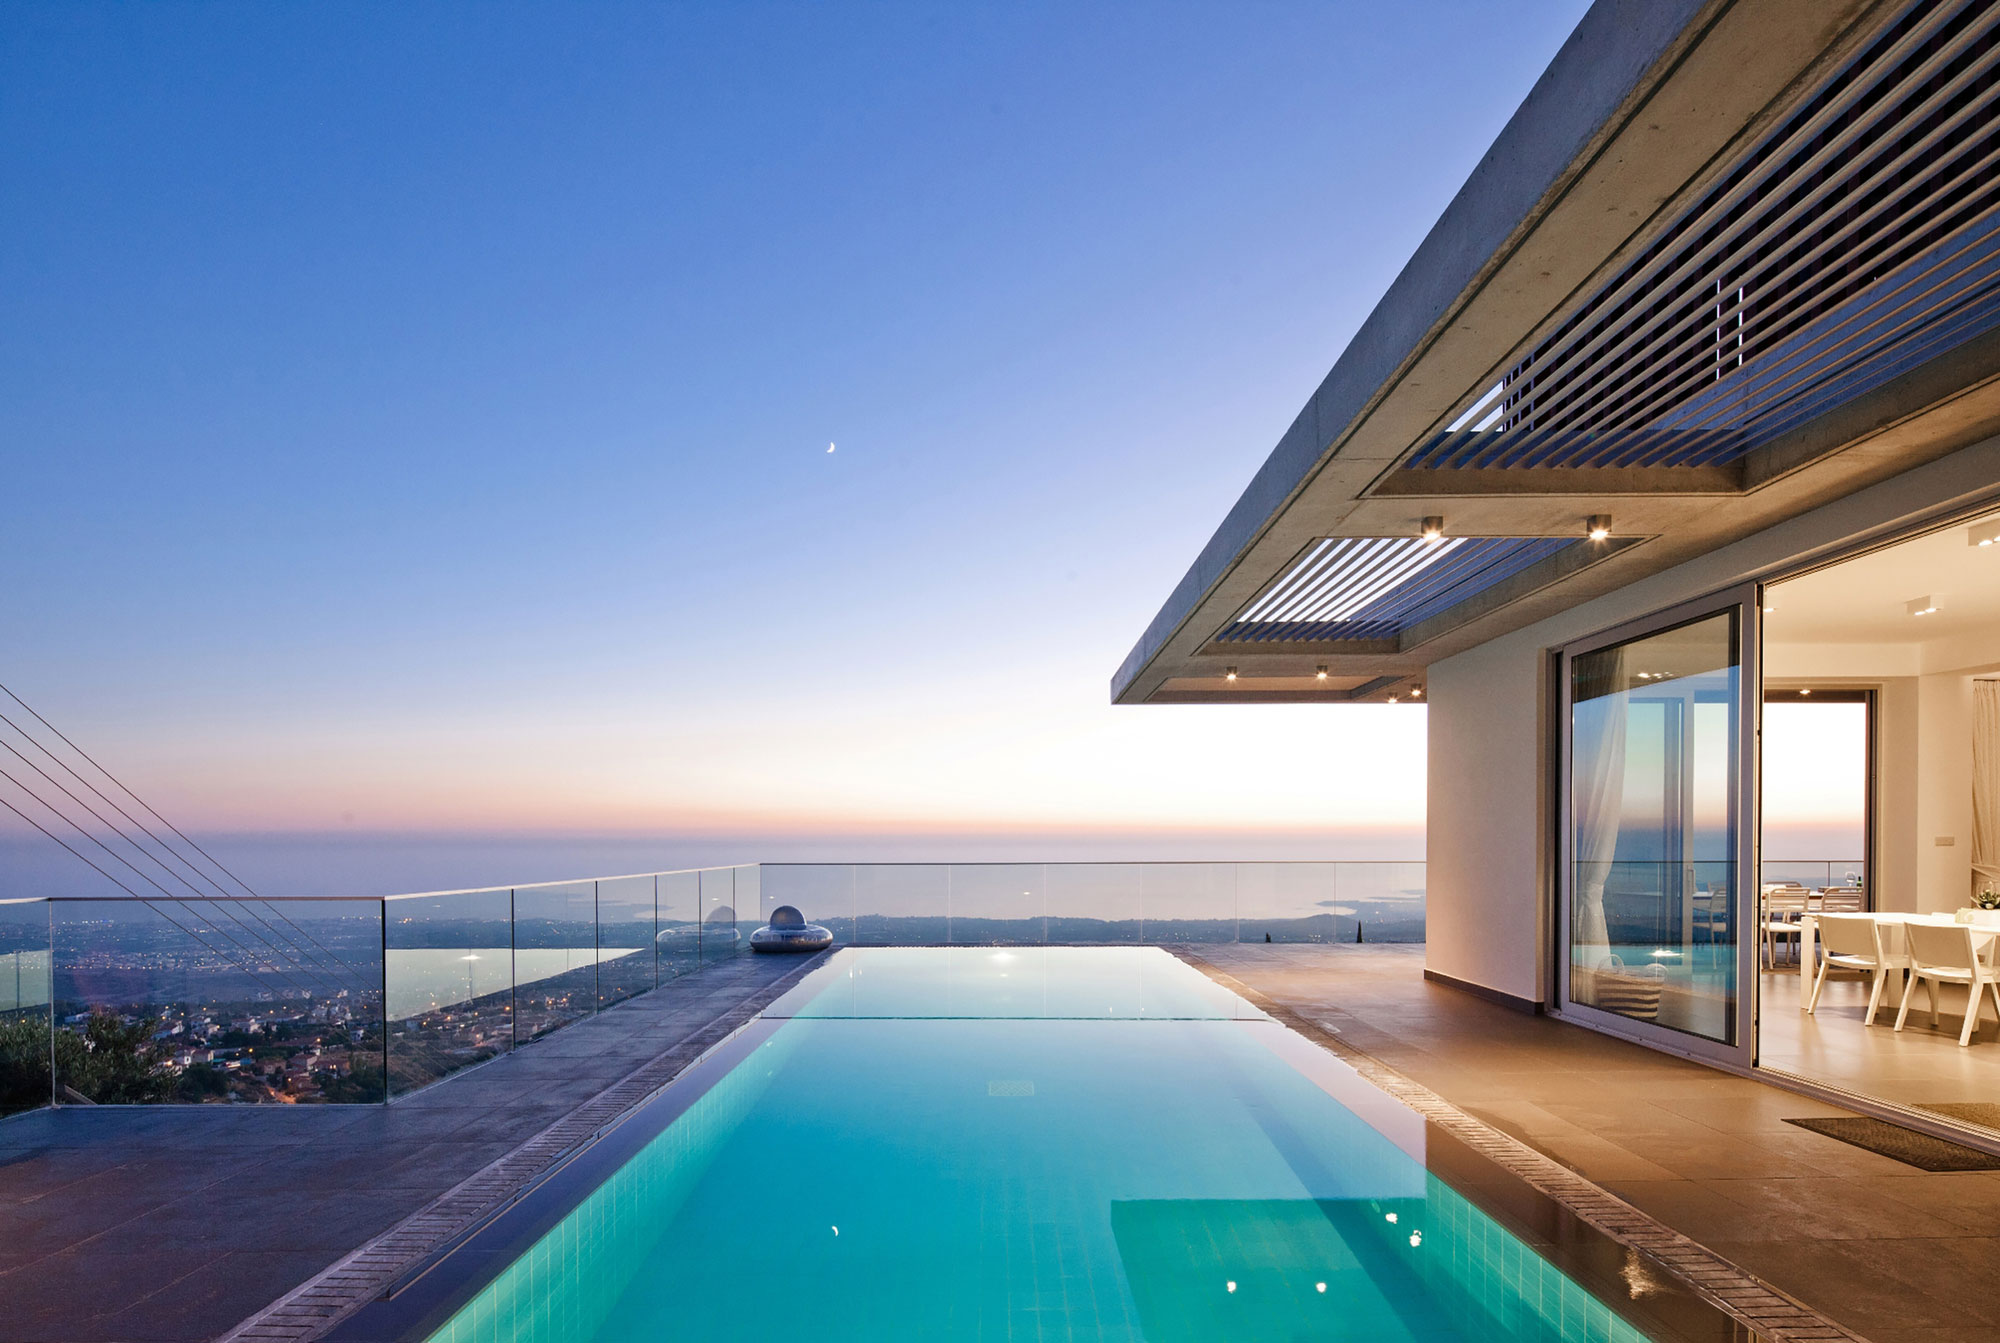 Modern Prodromos and Desi Residence in Paphos by Vardastudio Architects & Designers-16